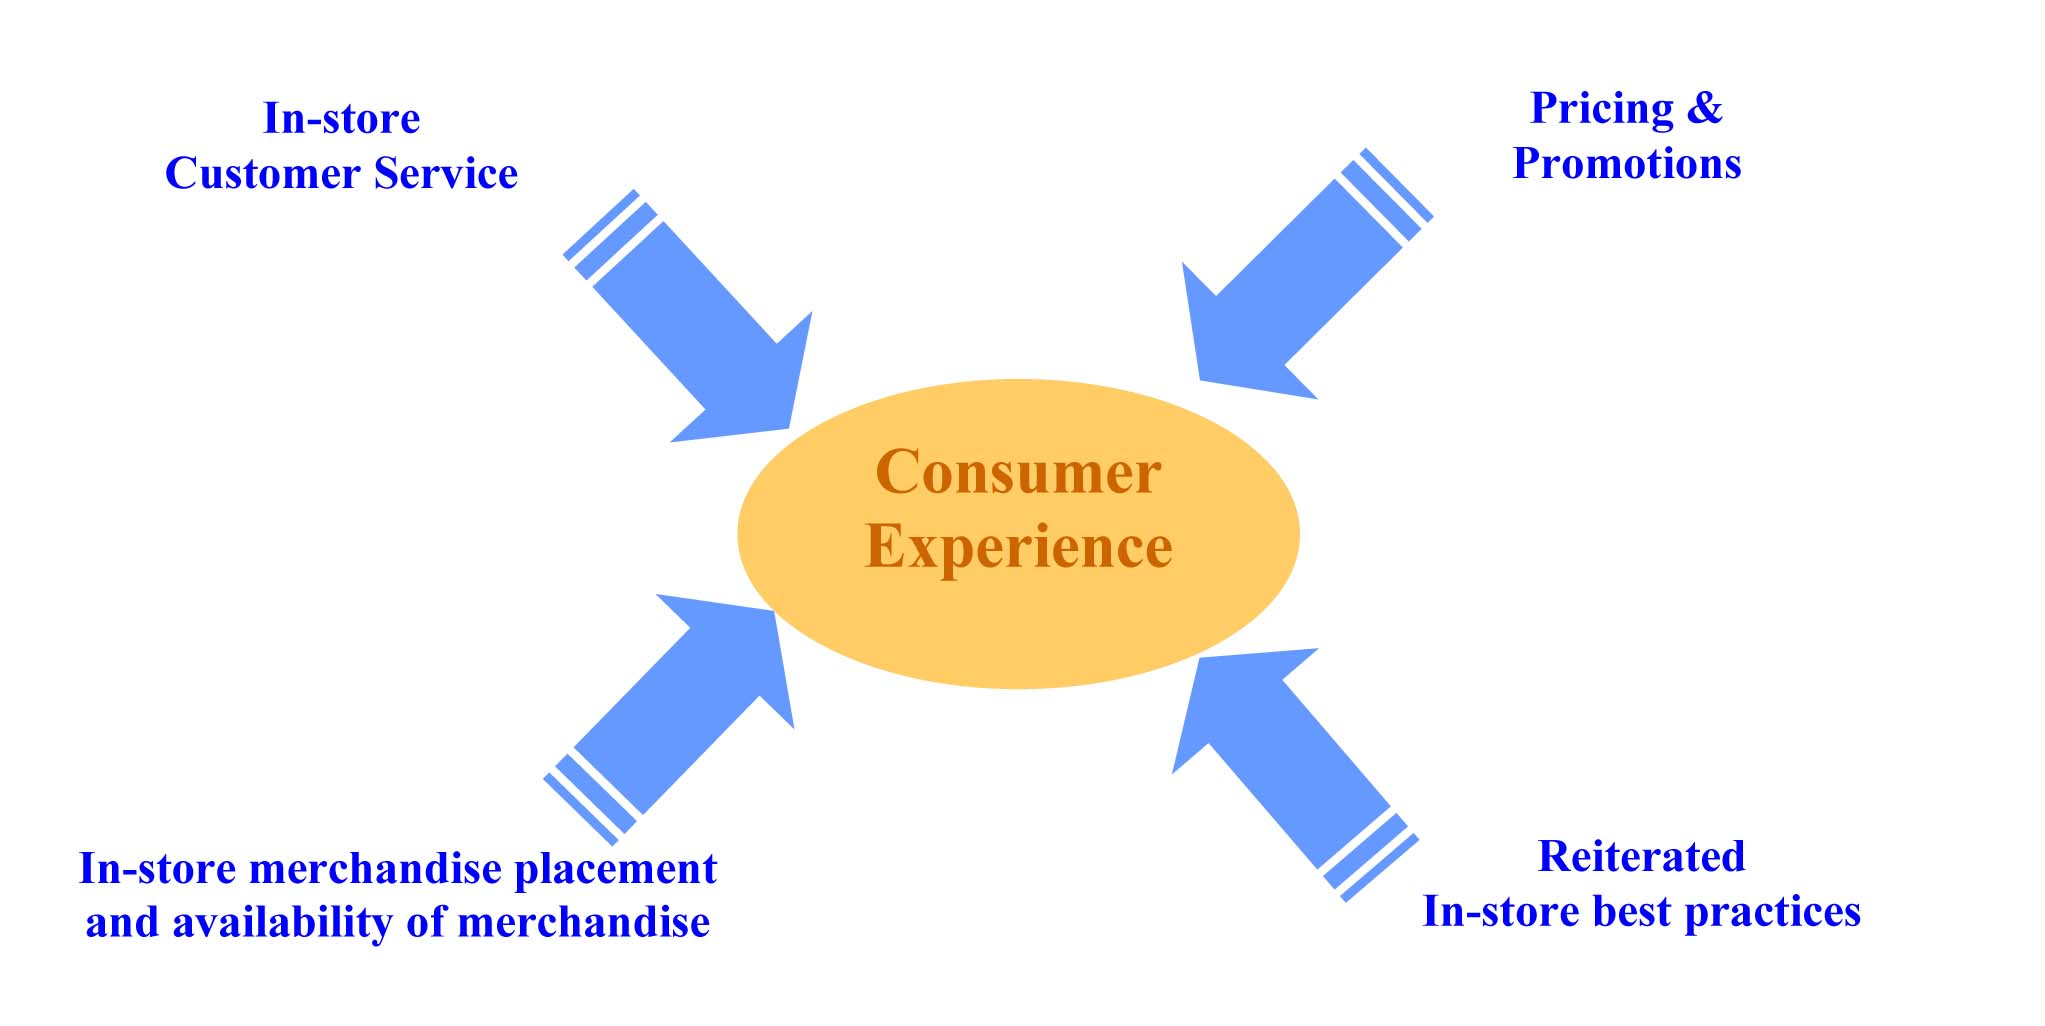 Focus on Consumers at this difficult time